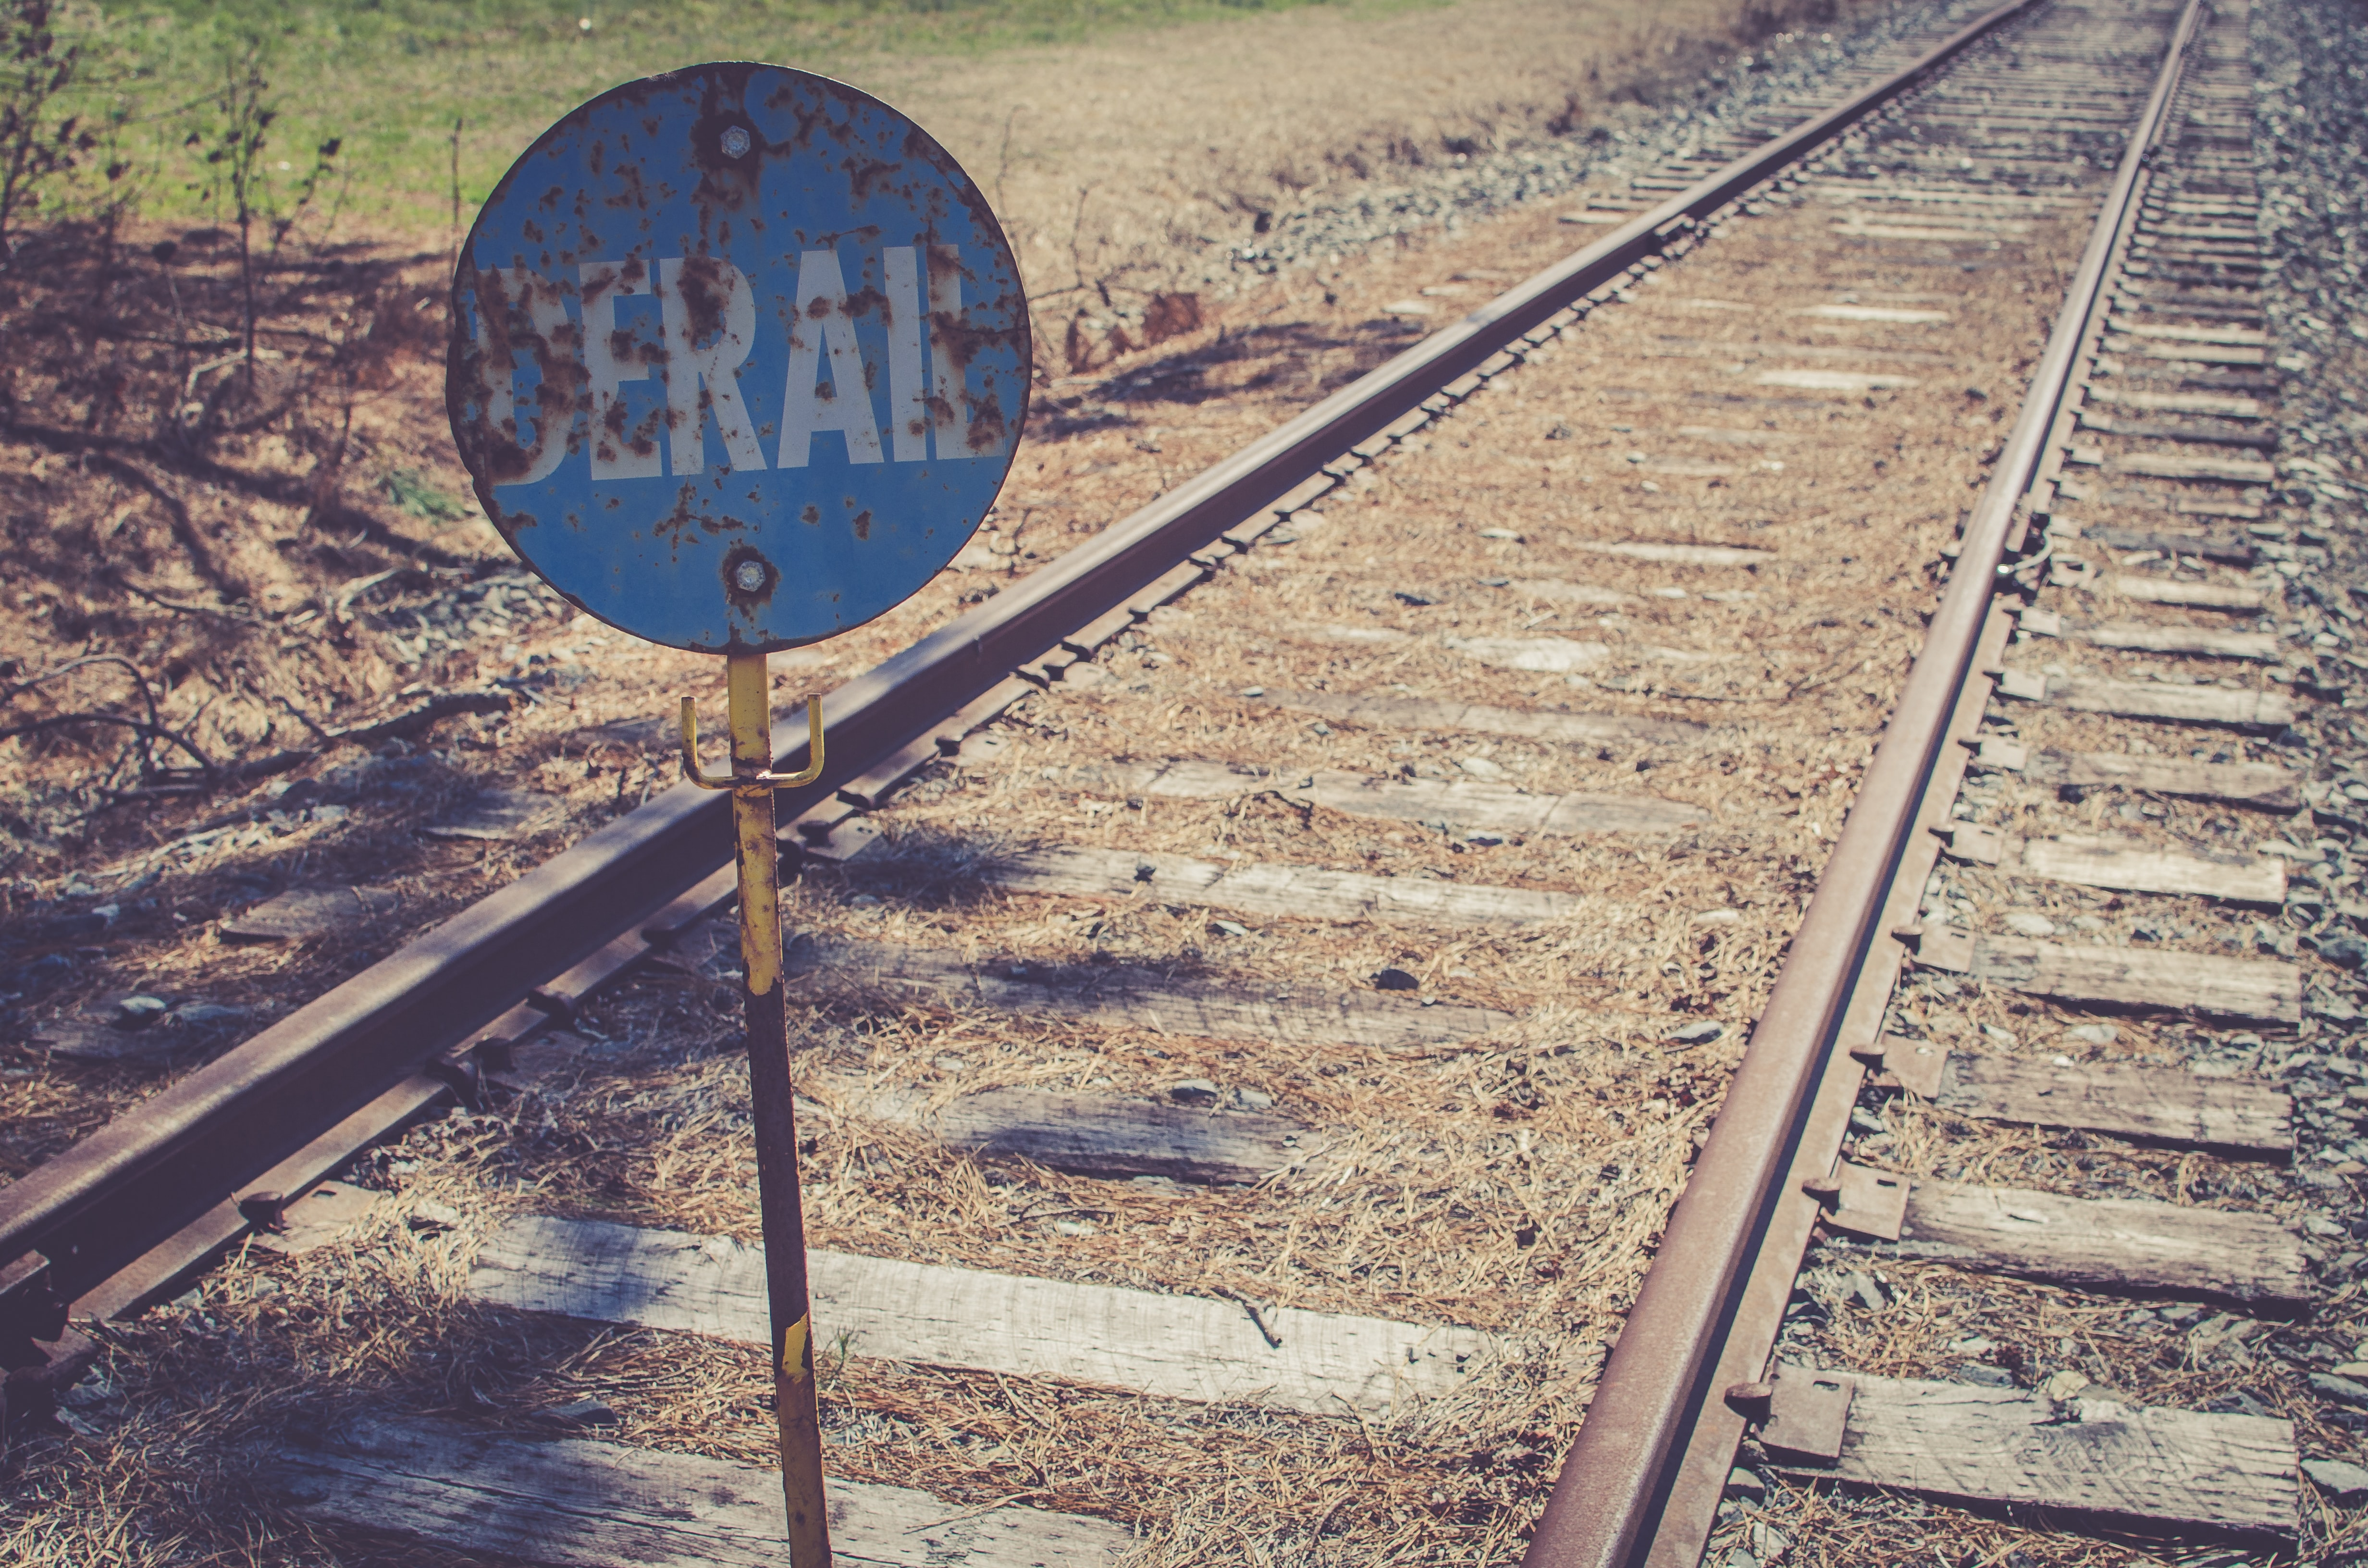 derail sign in railway